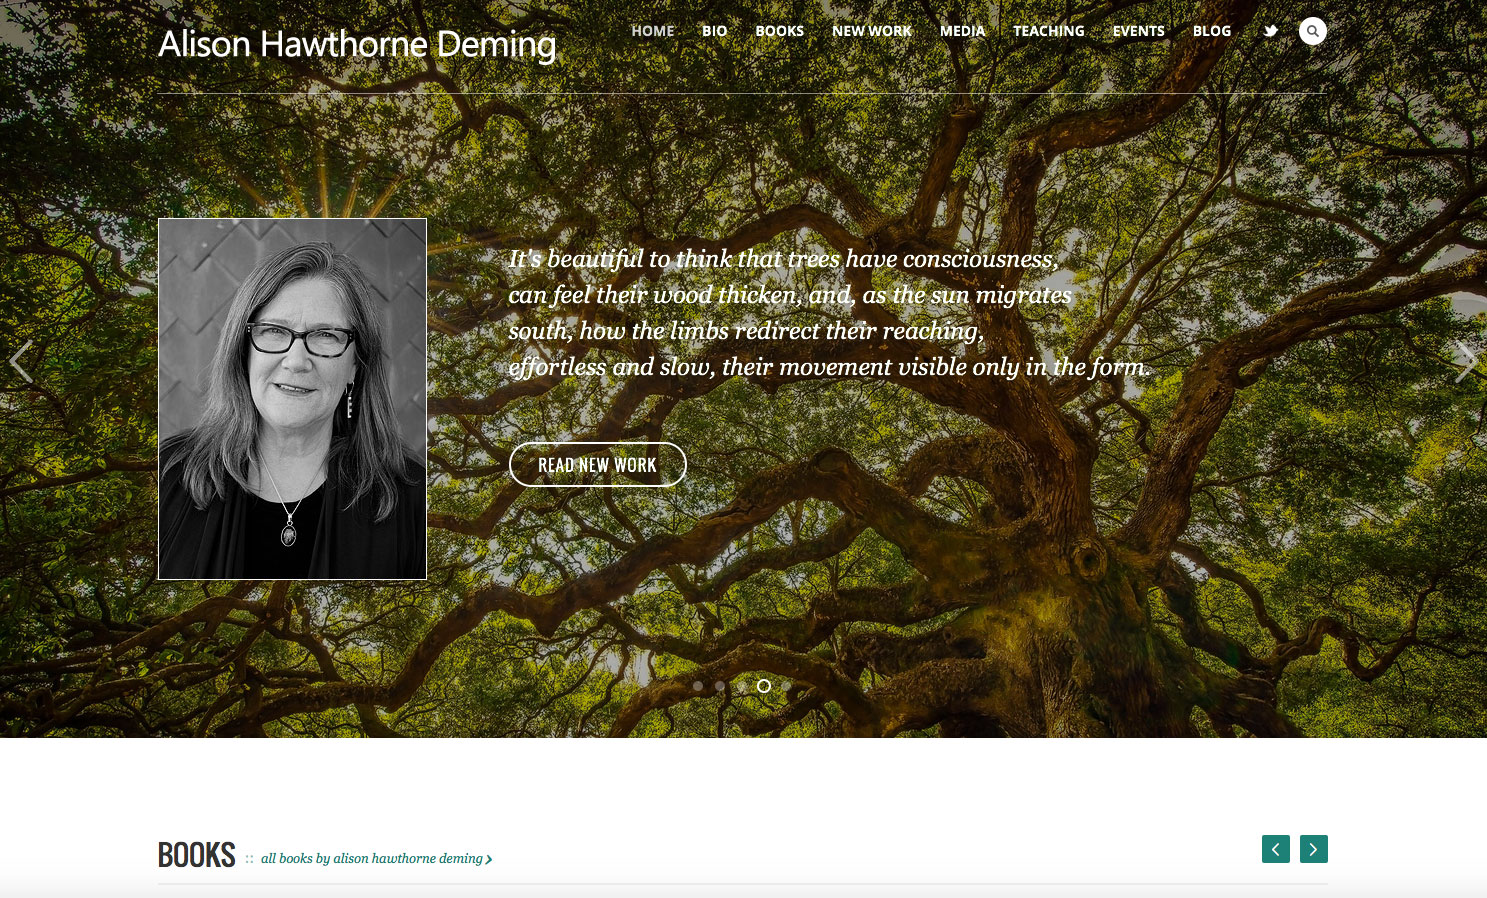 Alison Hawthorne Deming's Website